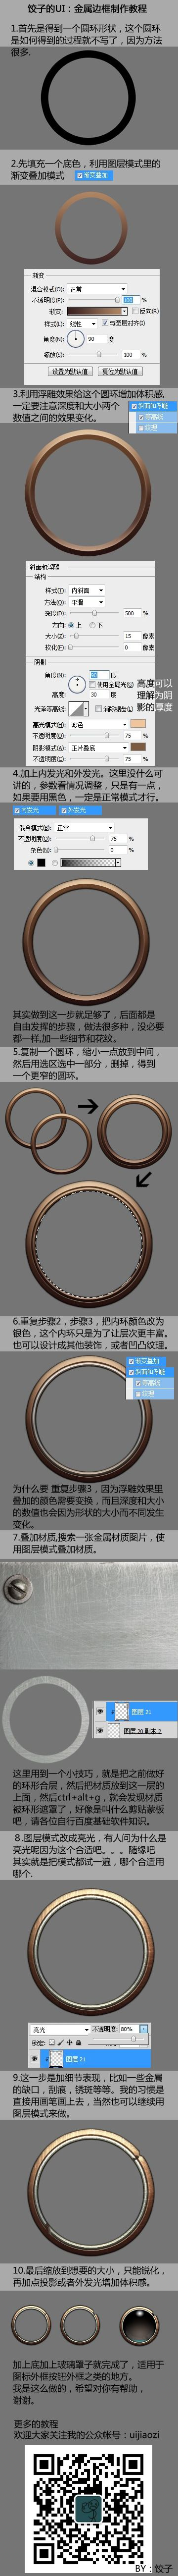 金属质感边框简易教程 | GAMEUI- ... Brushed metal ring painting drawing resource tool how to tutorial instructions | Create your own roleplaying game material w/ RPG Bard: www.rpgbard.com | Writing inspiration for Dungeons and Dragons DND D&D Pathfinder PFRPG Warhammer 40k Star Wars Shadowrun Call of Cthulhu Lord of the Rings LoTR + d20 fantasy science fiction scifi horror design | Not Trusty Sword art: click artwork for source